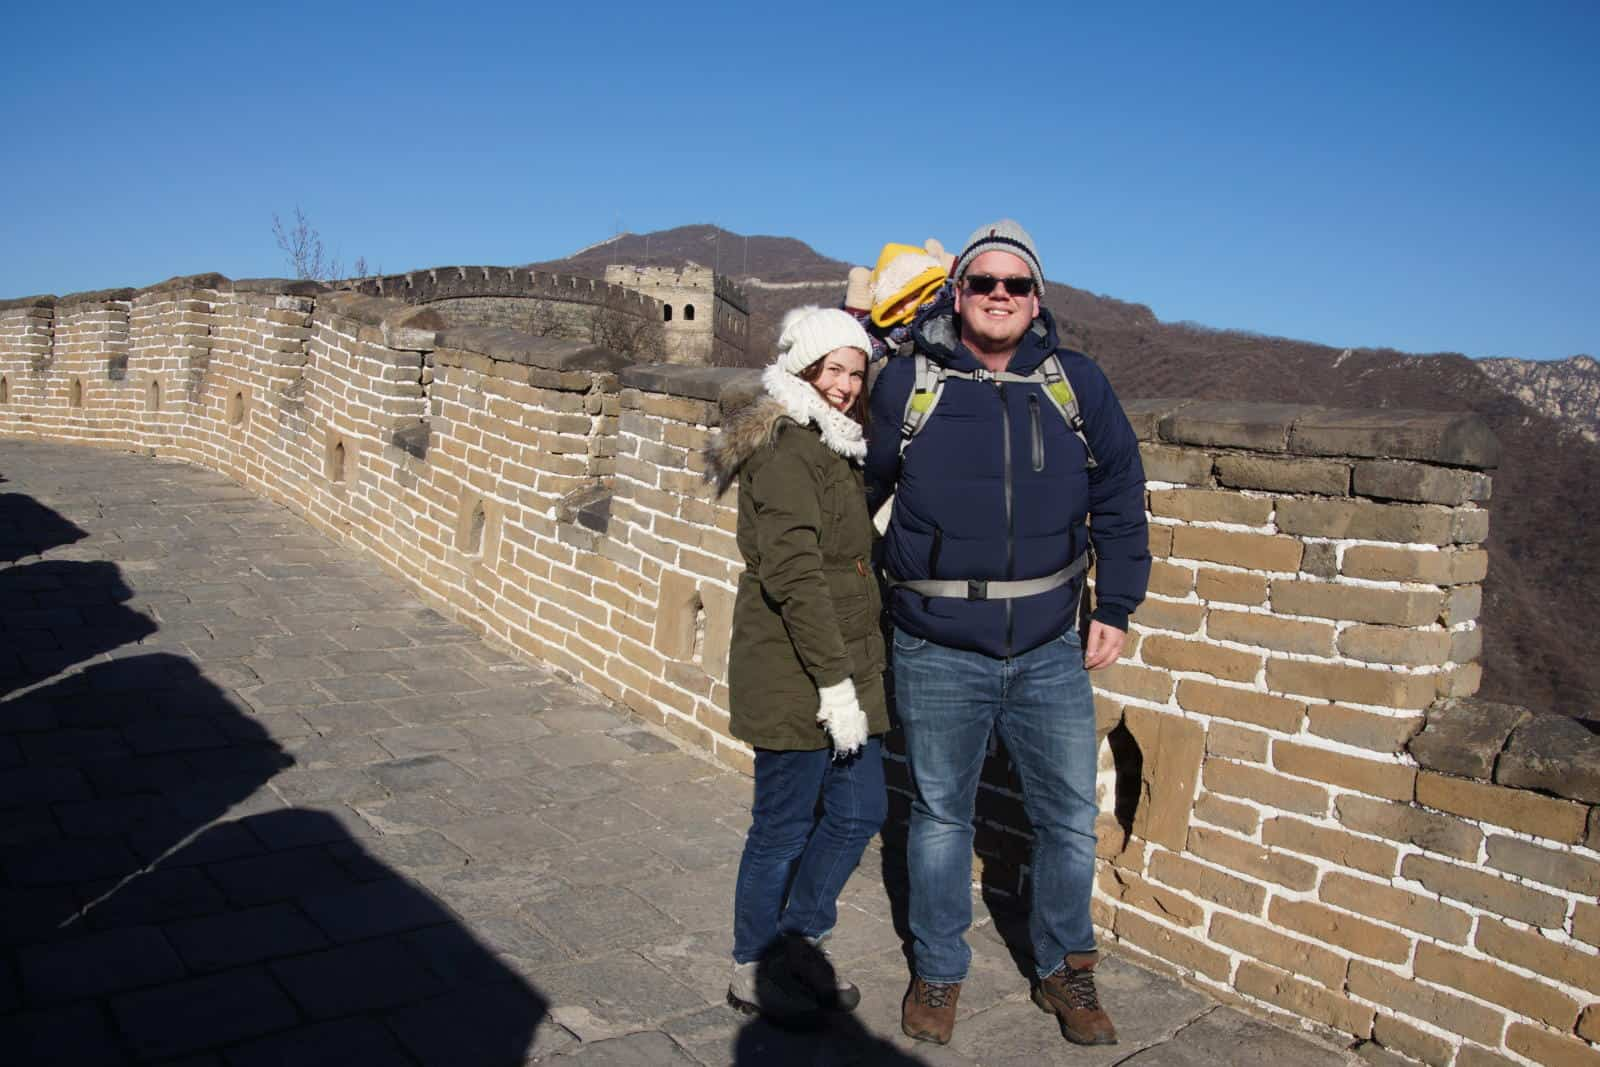 Wandermust Family at the Great Wall of China